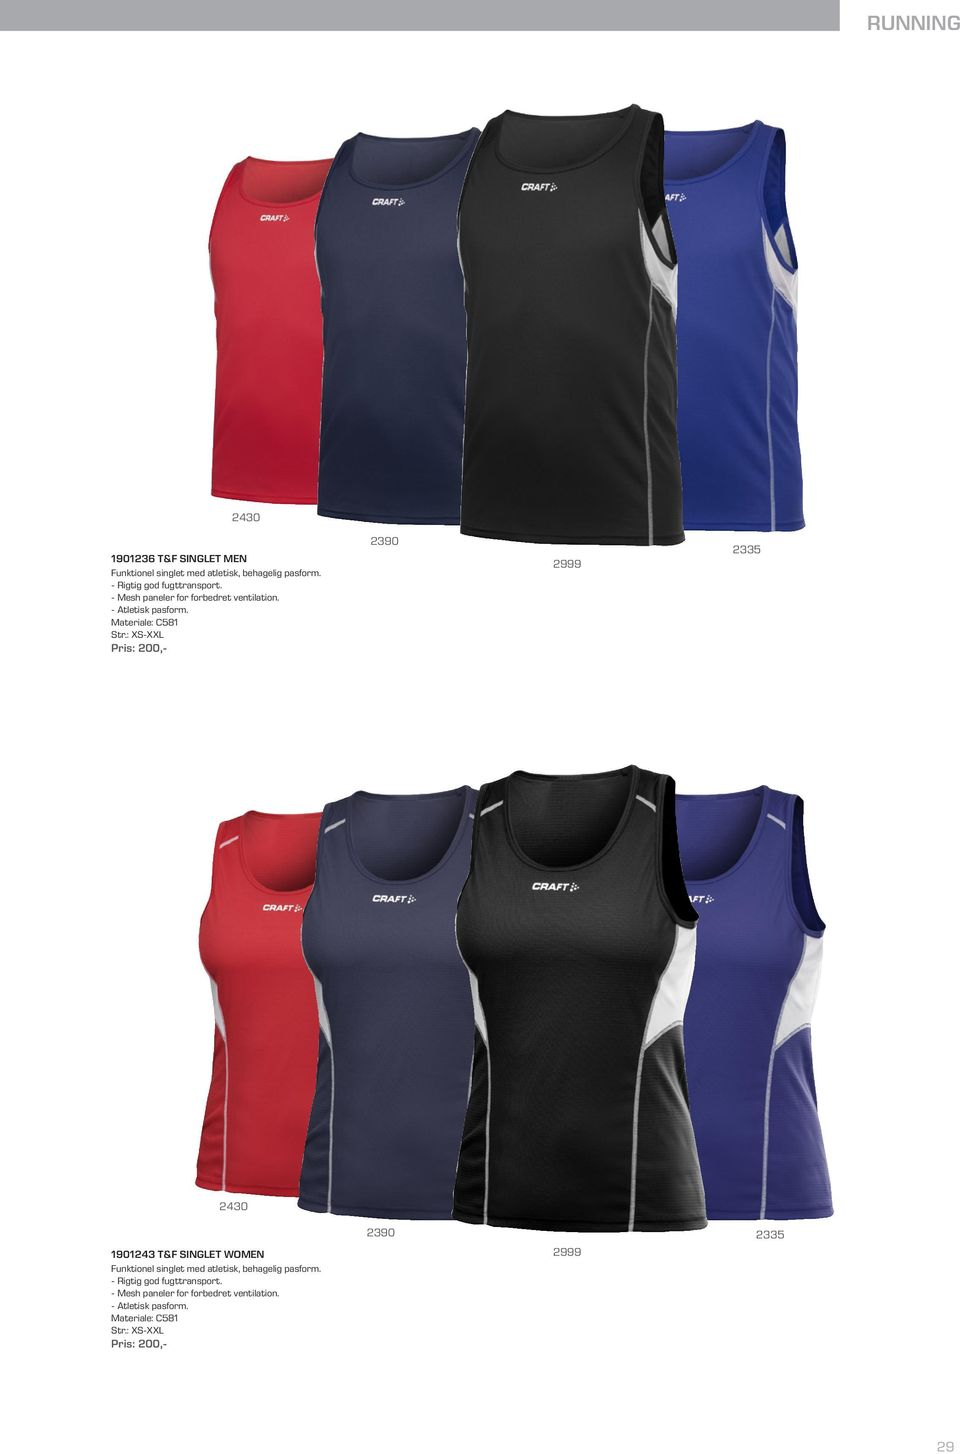 Materiale: C581 1901243 T&F SINGLET WOMEN Funktionel singlet med atletisk,